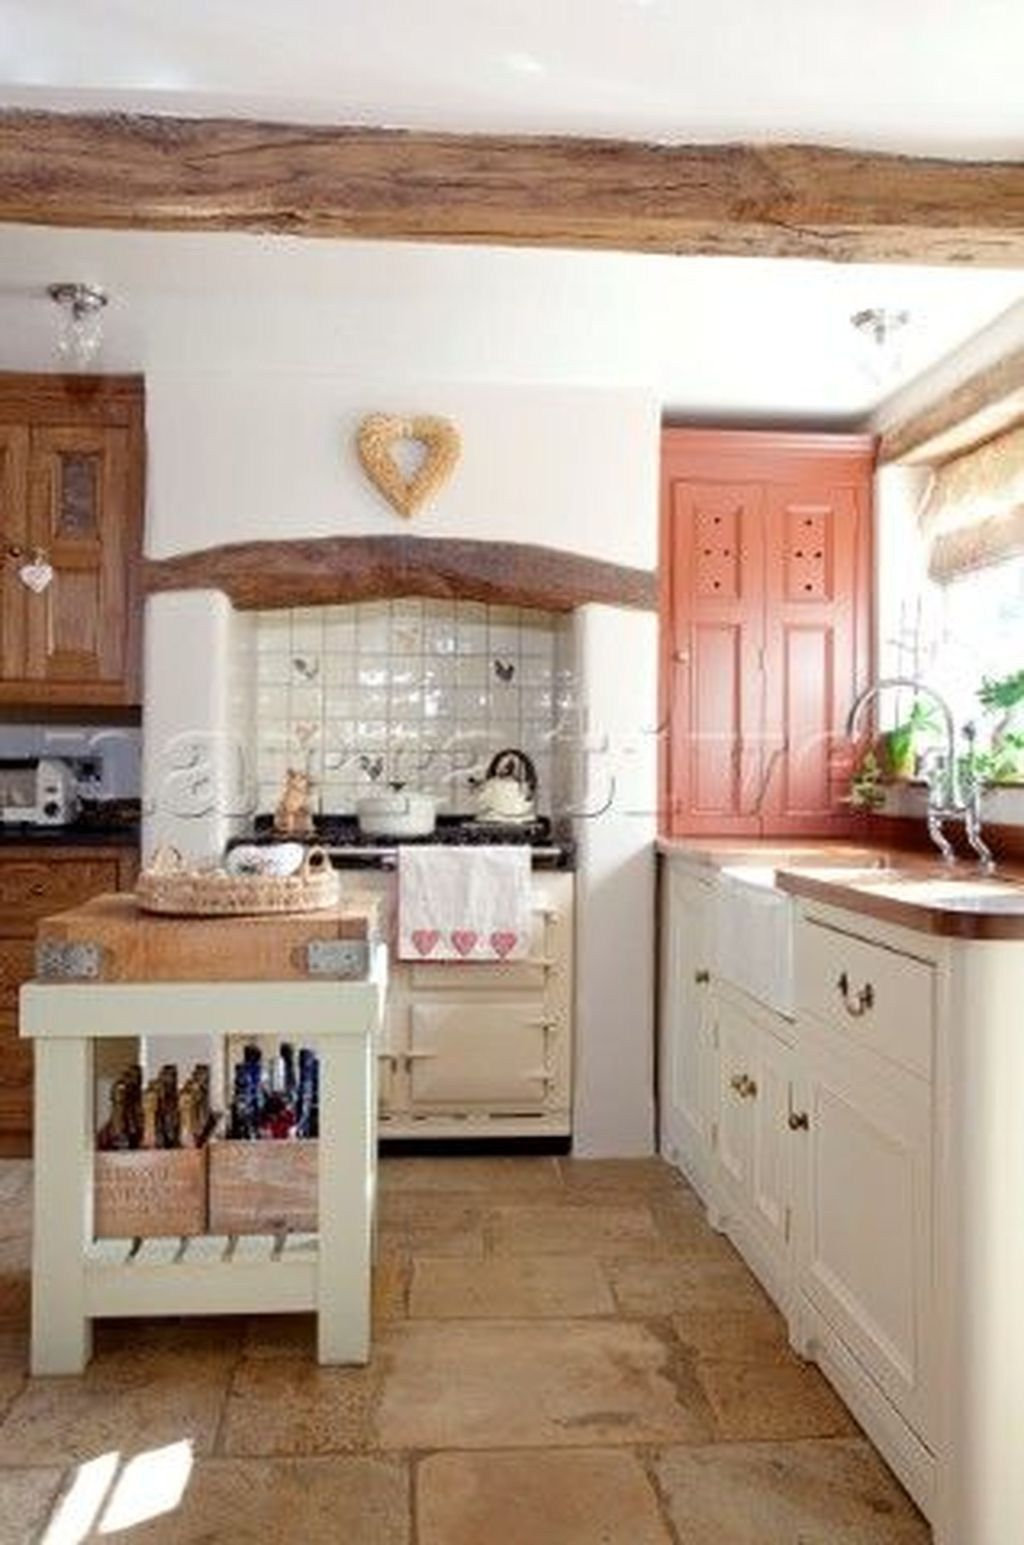 46 Inspiring Rustic Country Kitchen Ideas To Renew Your ... on Rustic:mophcifcrpe= Cottage Kitchen Ideas  id=66624